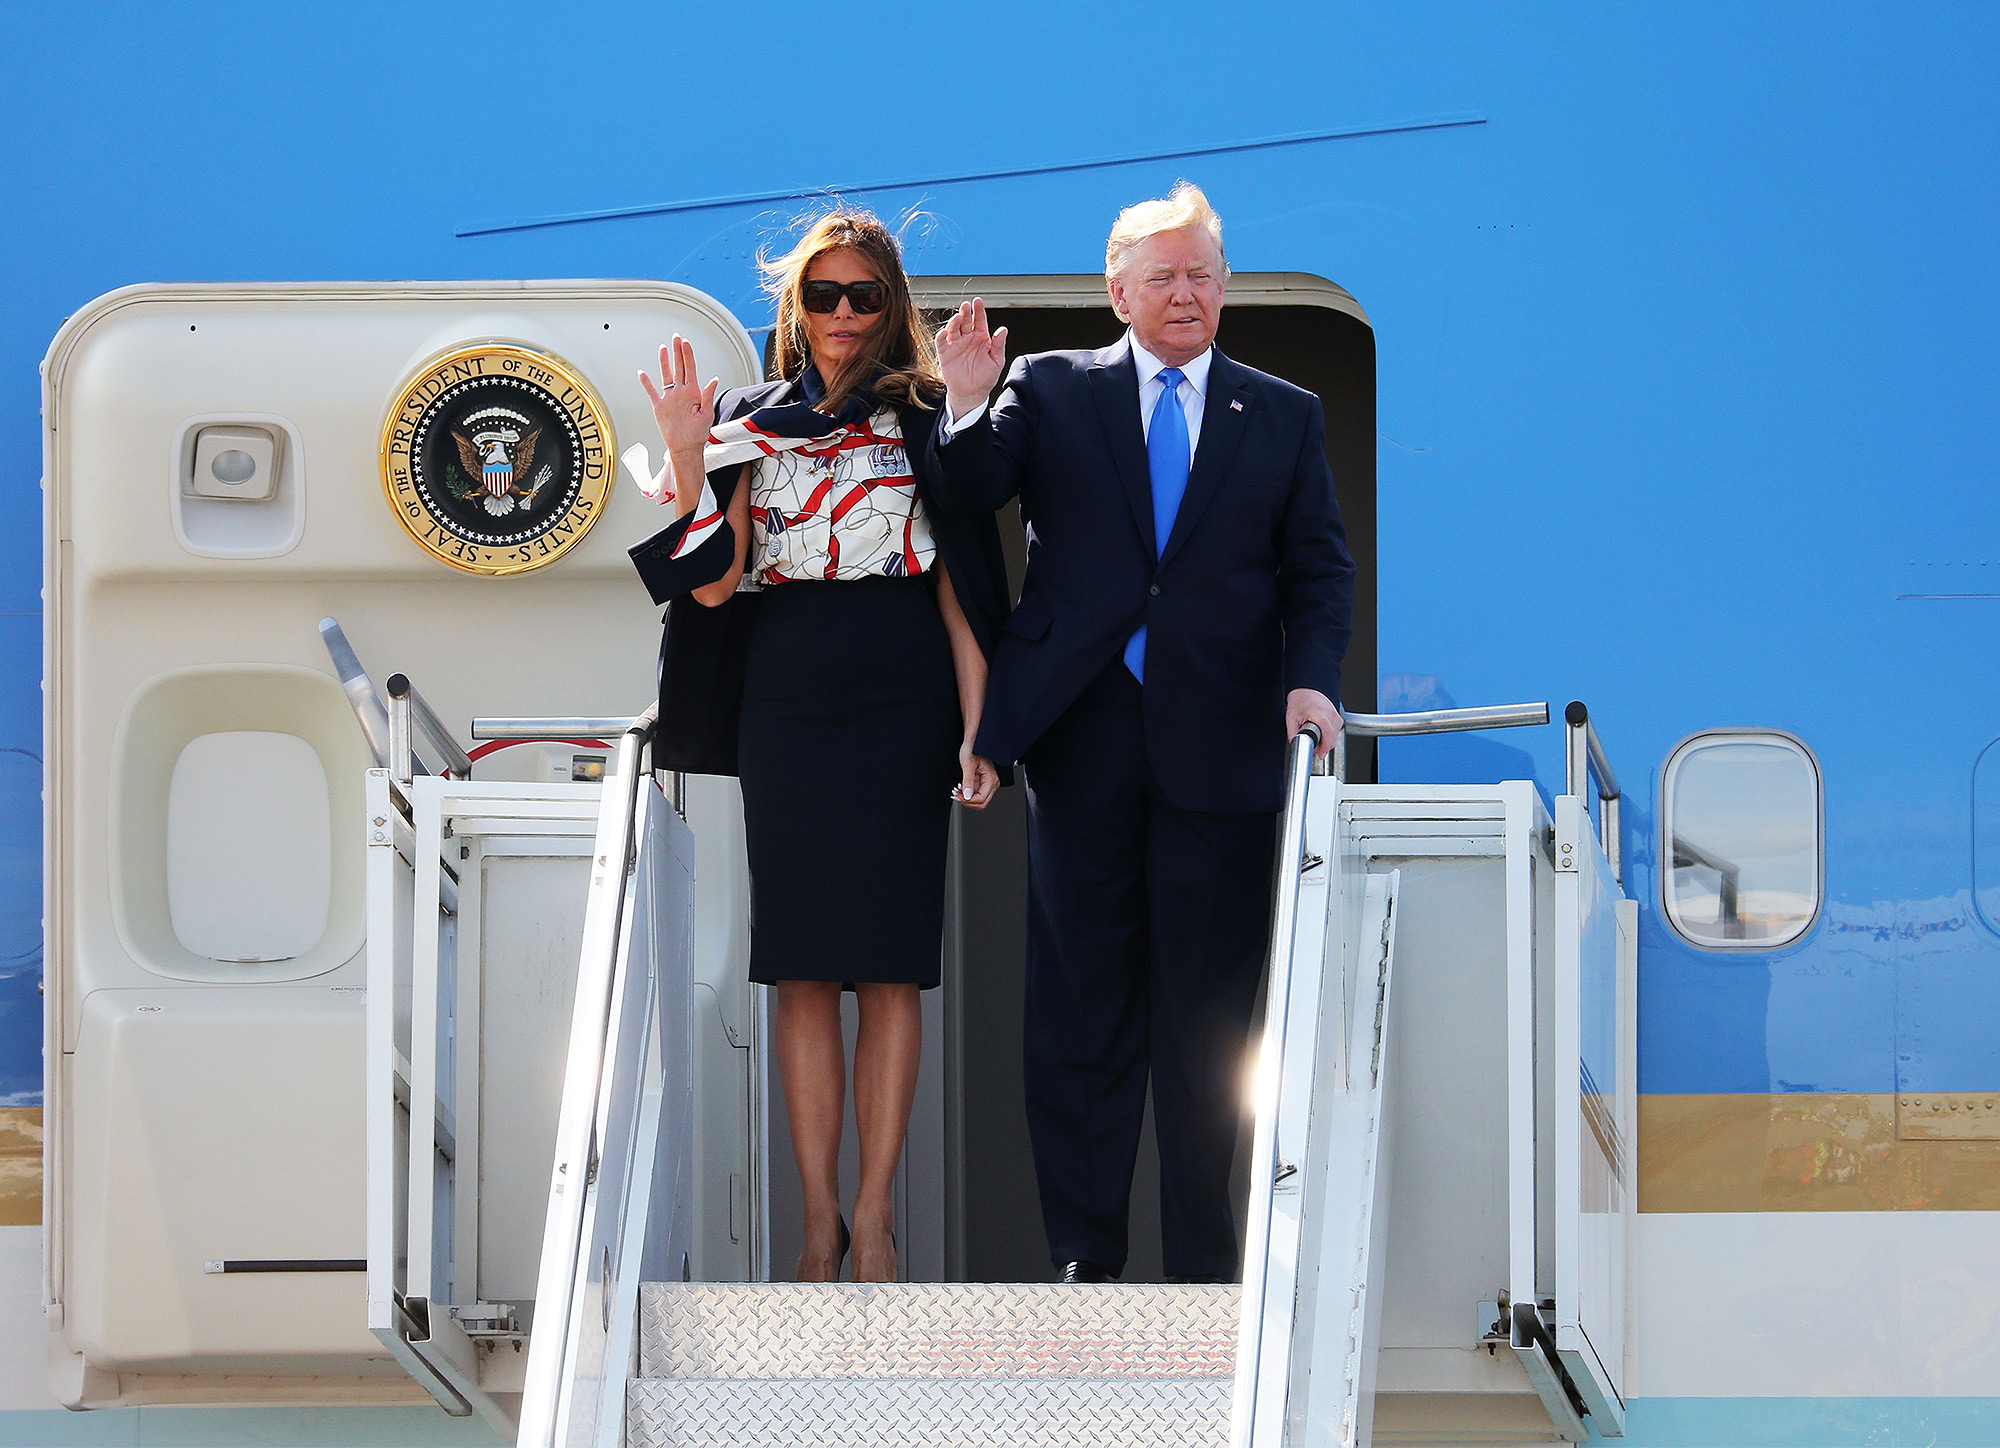 Donald Trump and US First Lady Melania Trump